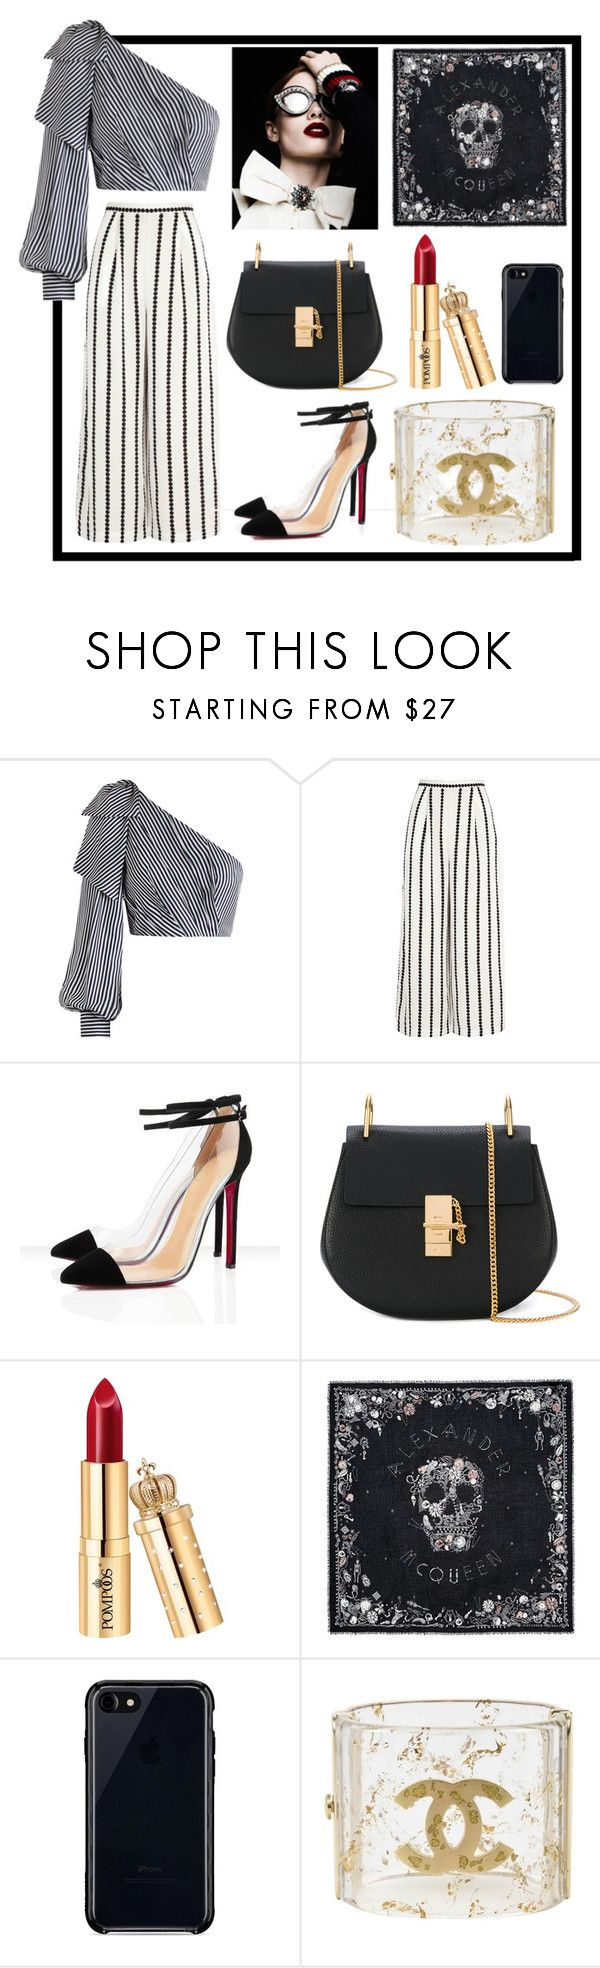 """""""stripes and stripes"""" by summerwind03 ❤ liked on Polyvore featuring Zimmermann, Finders Keepers, Chloé, Alexander McQueen, Belkin, Chanel, StreetStyle, stripedshirt, oneshoulder and StreetChic"""